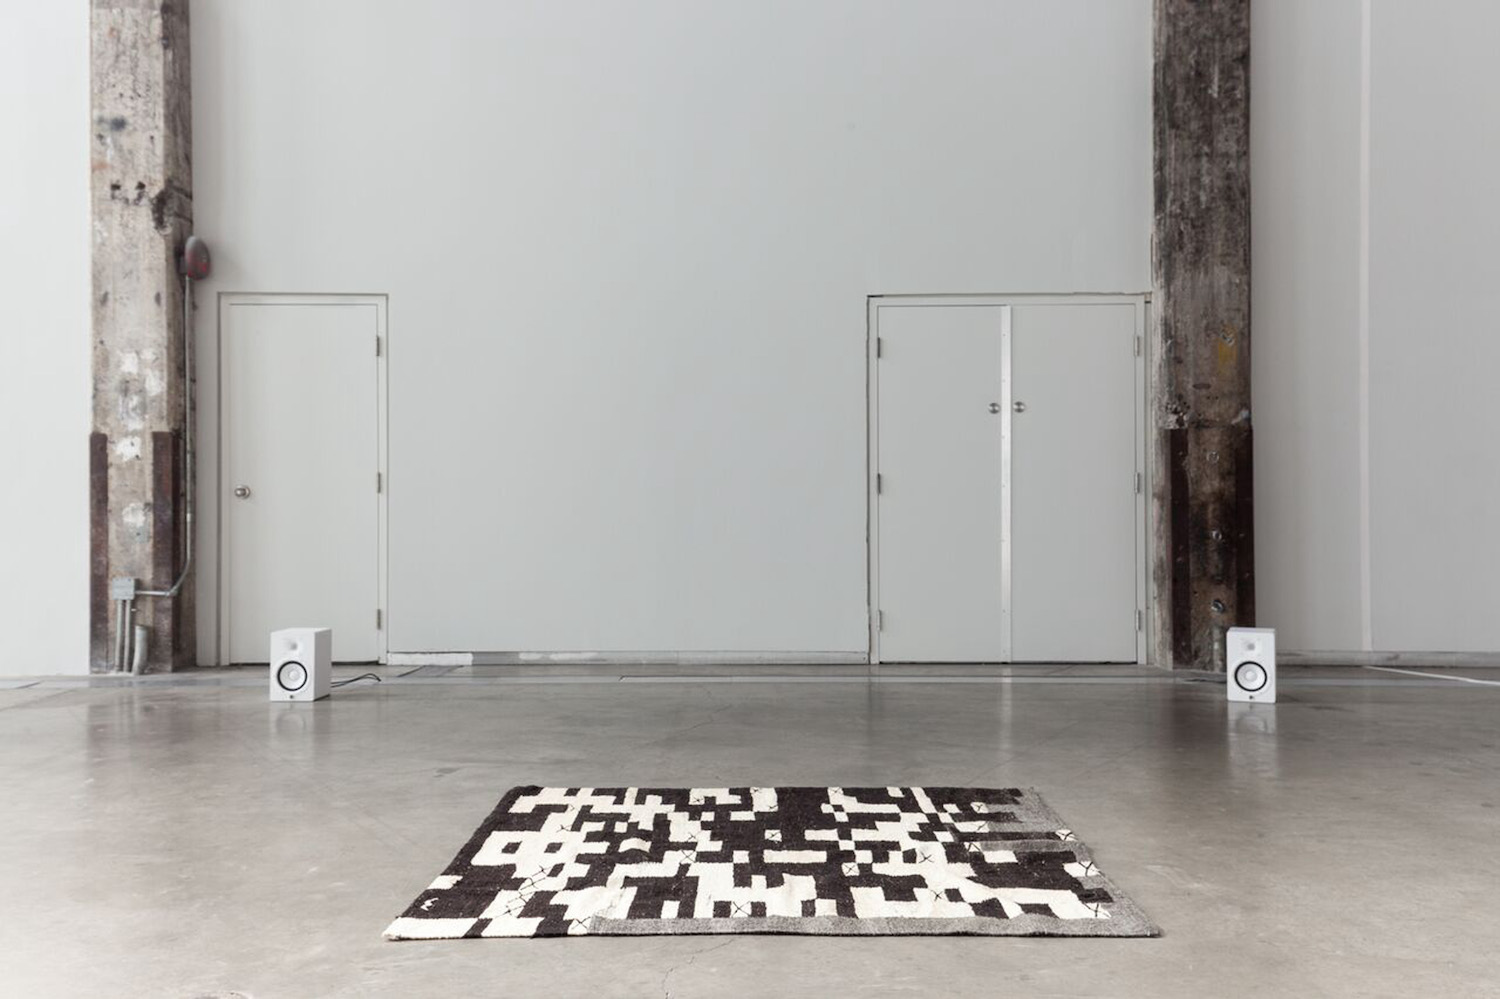 Nicole Bachmann, A is black, white, white, white, white, 2015. Audio with wool hand woven rug. Dimensions variable. Rug dimensions: 170 x 160 cm.